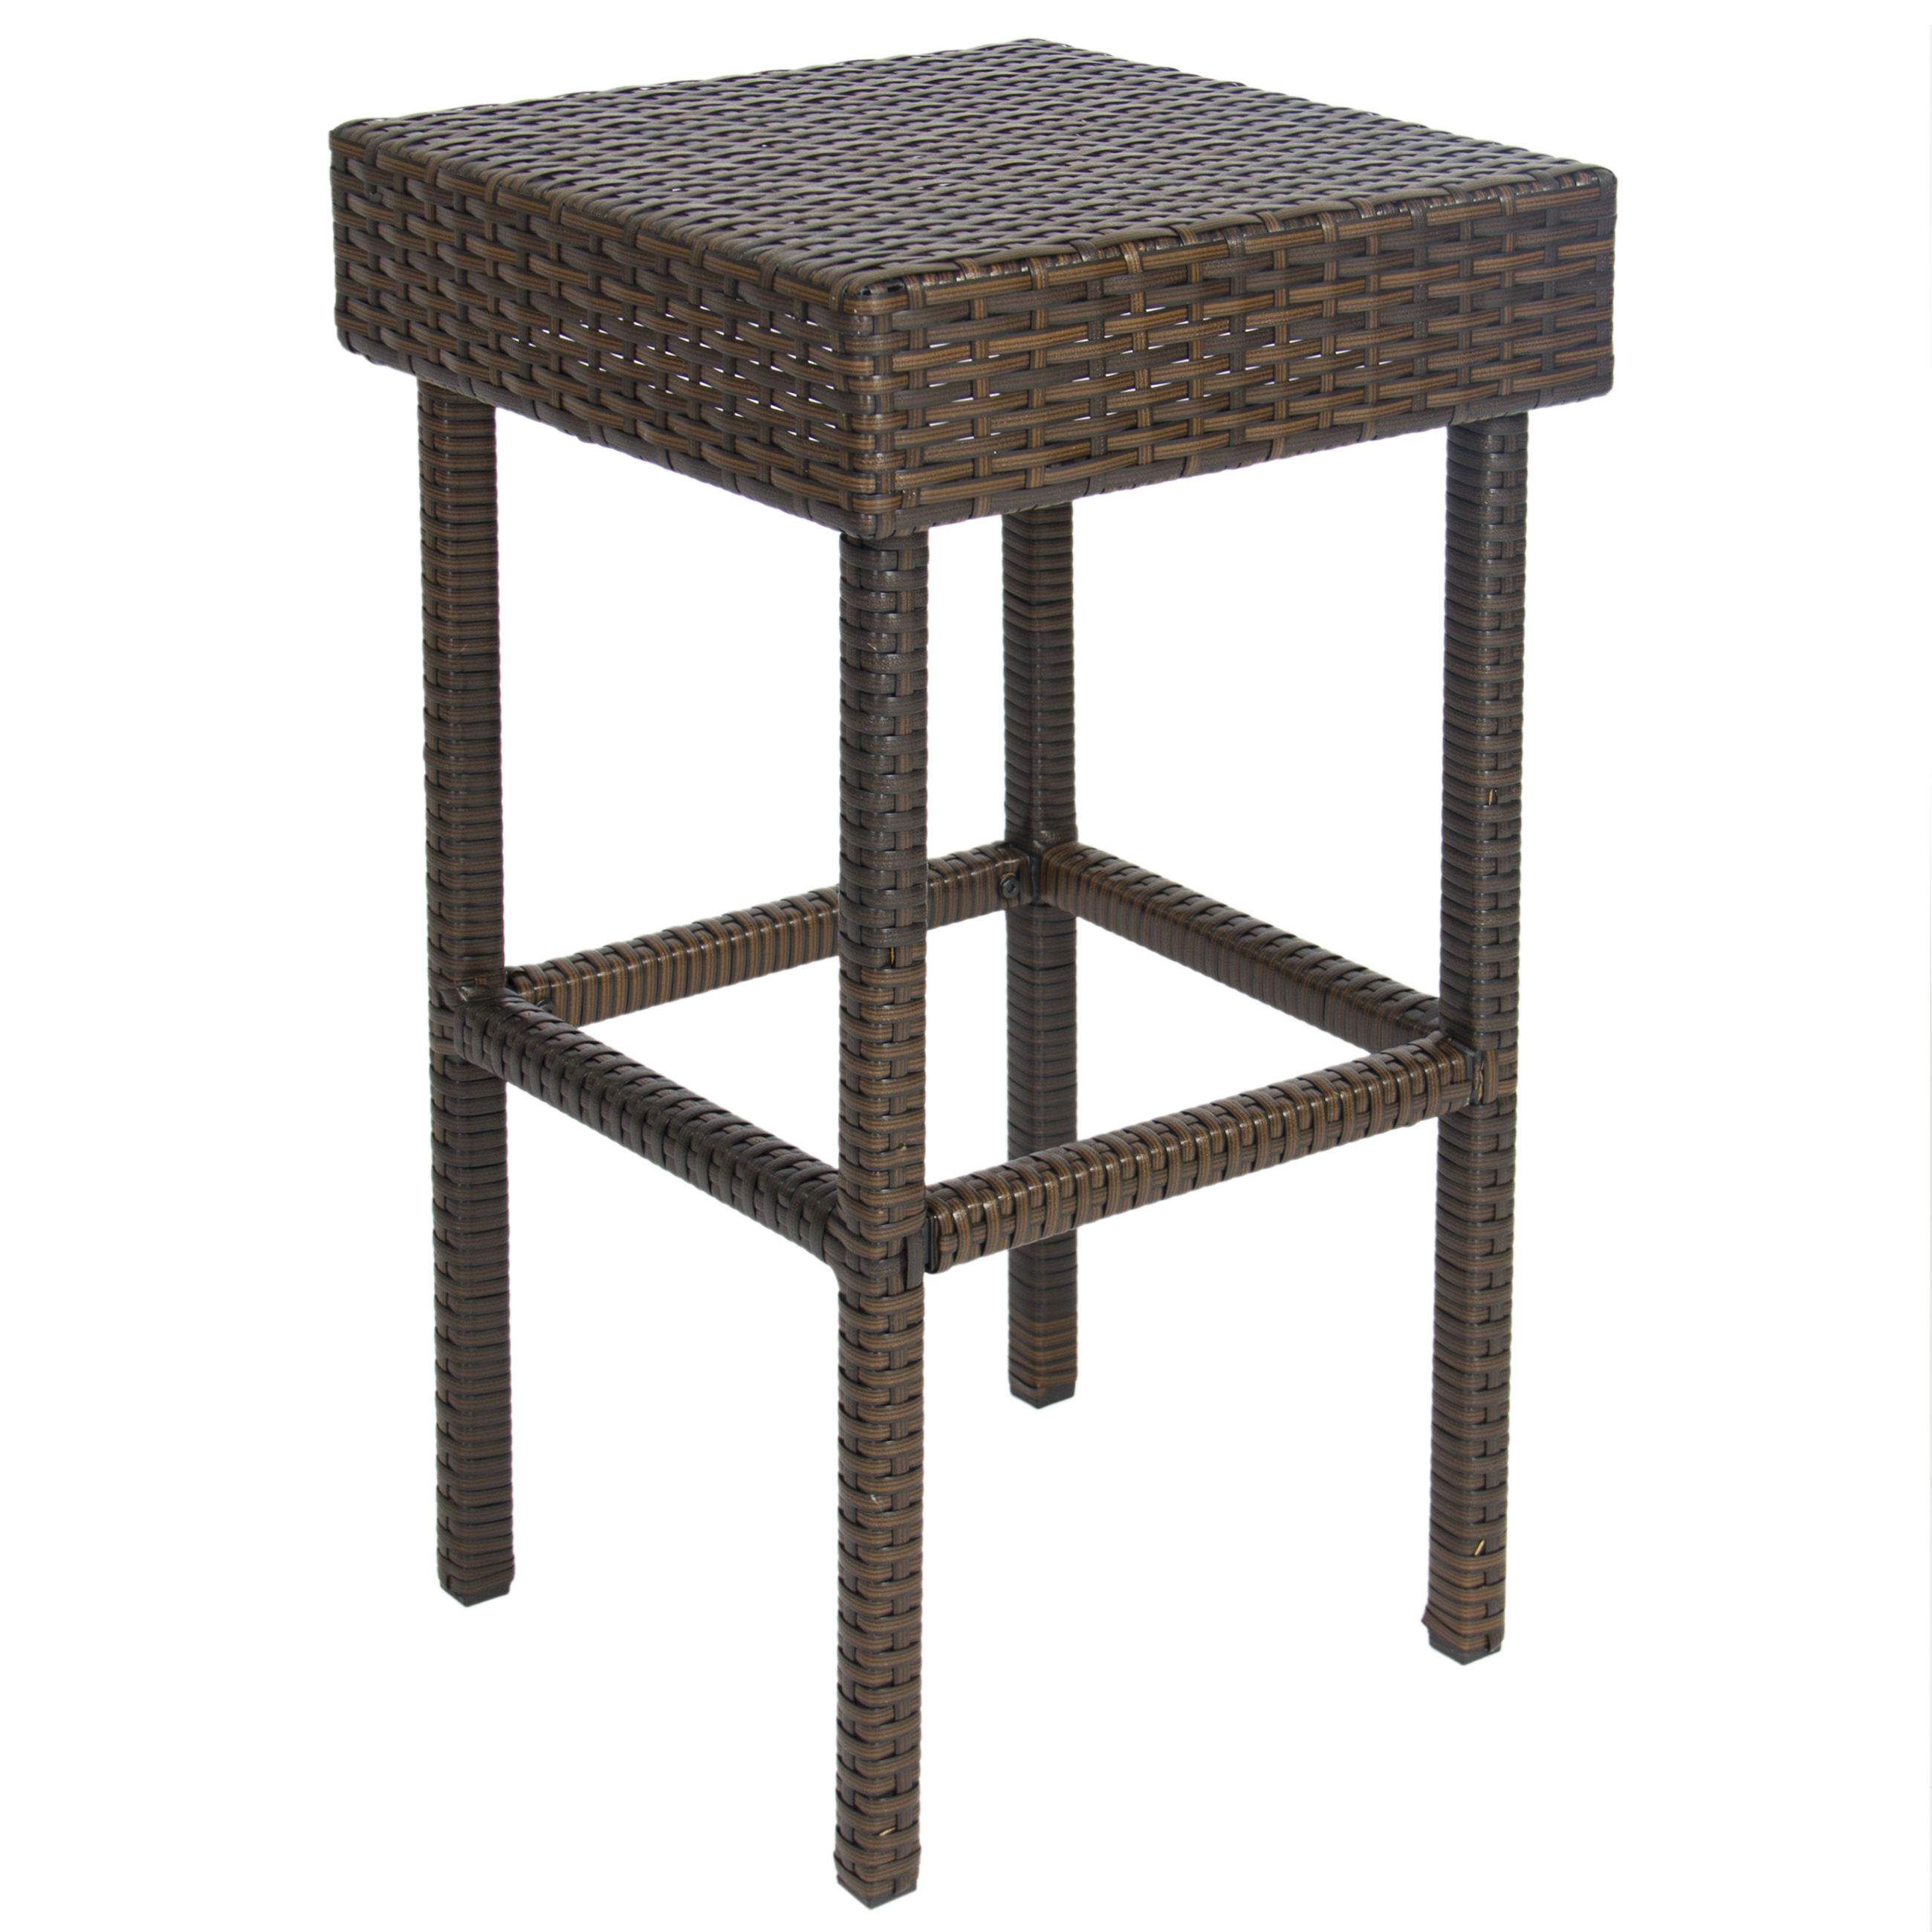 bestchoiceproducts best choice products wicker bar set patio middletown accent table outdoor backyard stools rattan garden turquoise dresser plastic storage loveseat clearance